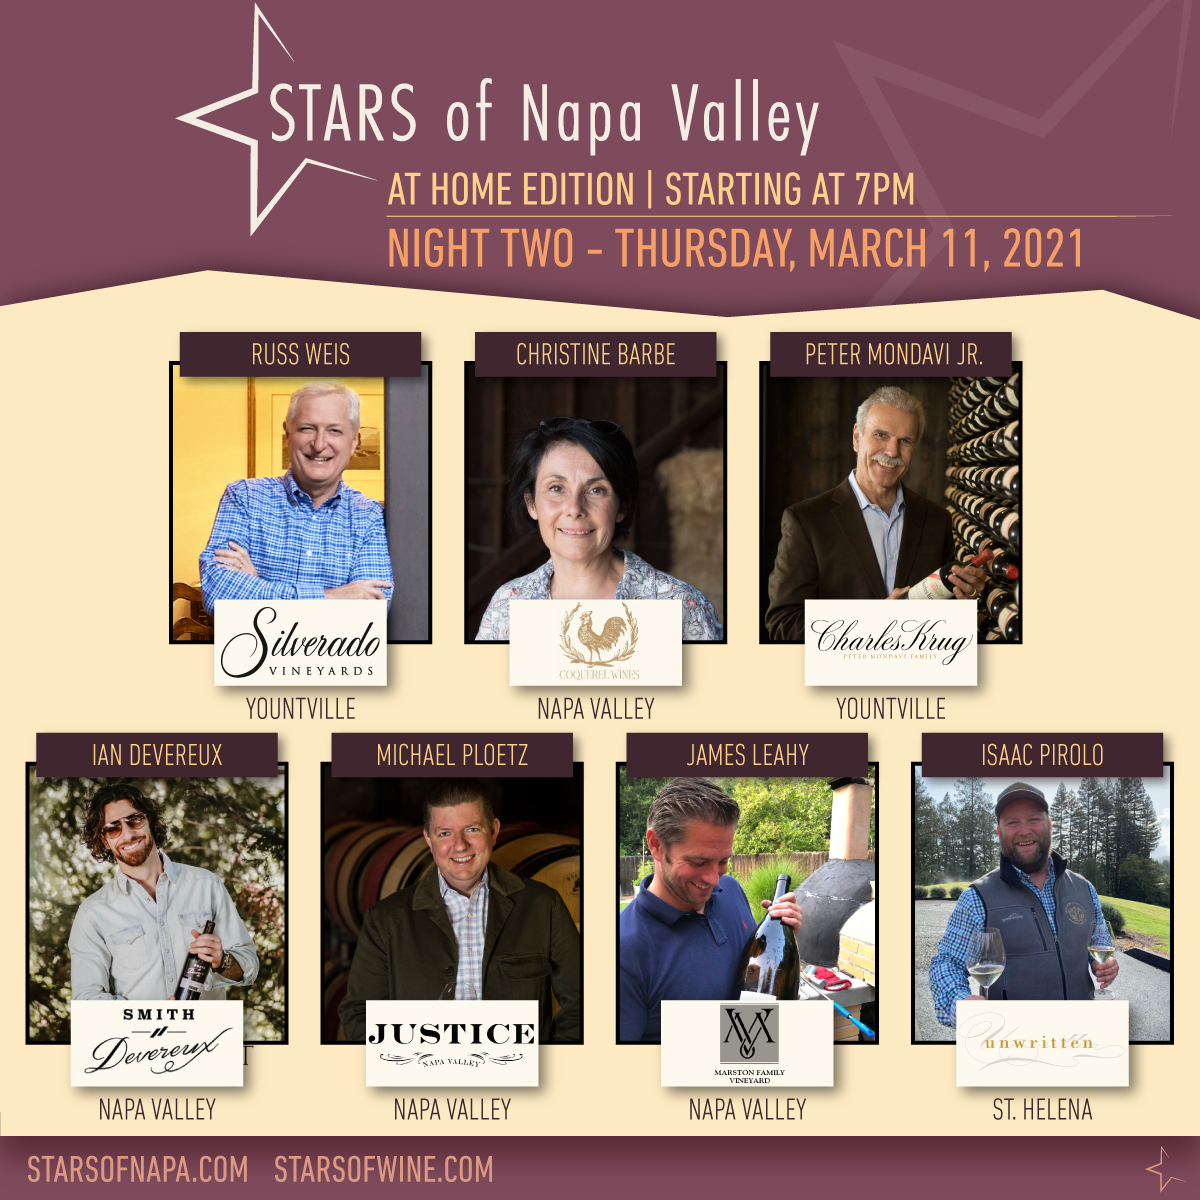 STARS of Napa Valley Night Two